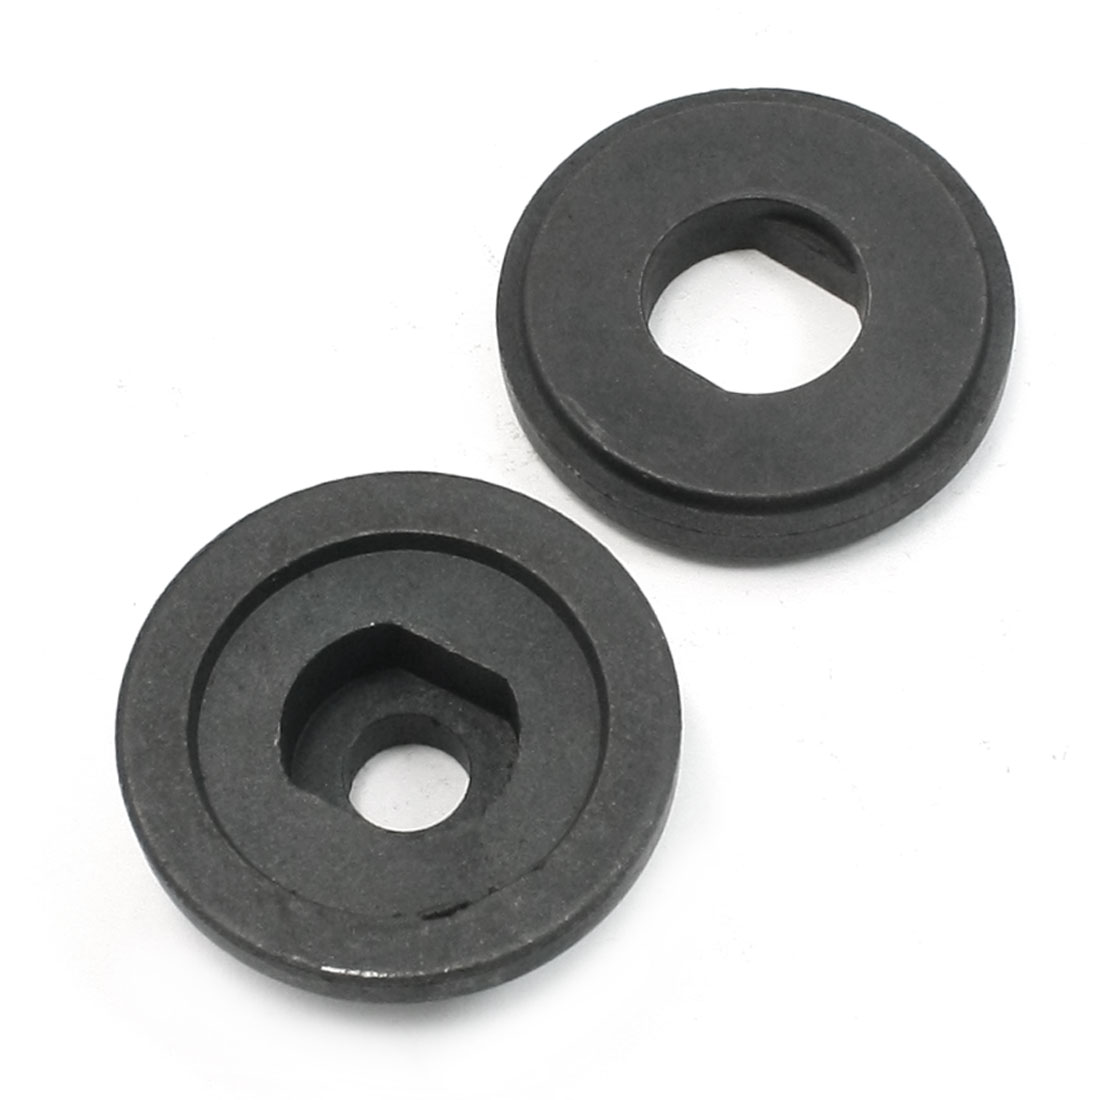 2 Pcs Replacement Round Clamp Inner Outer Flange Black for Hitachi 100